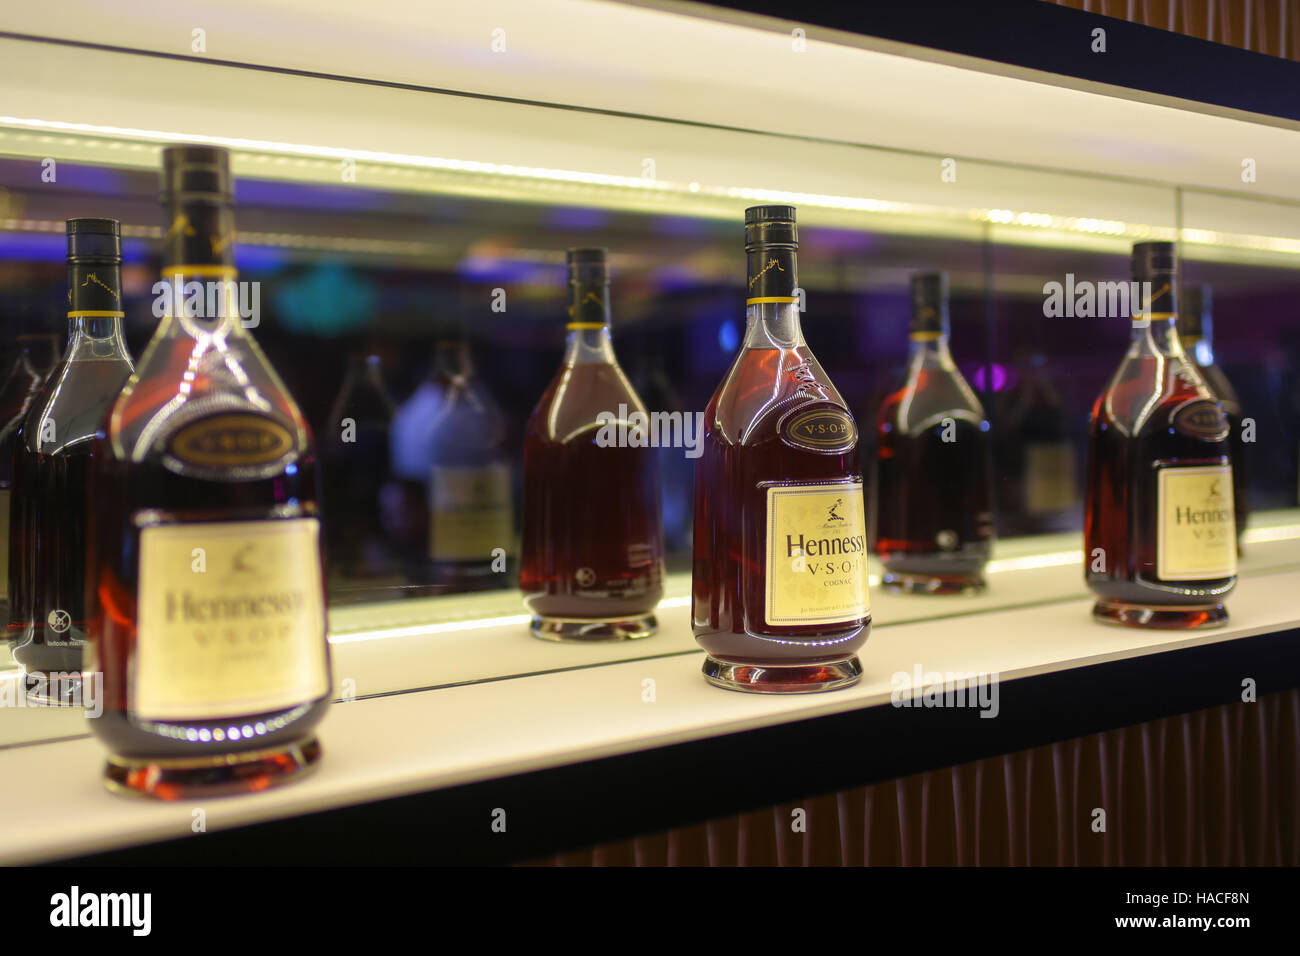 Hennessy Liquor Inside A Elegant Display Cabinet.